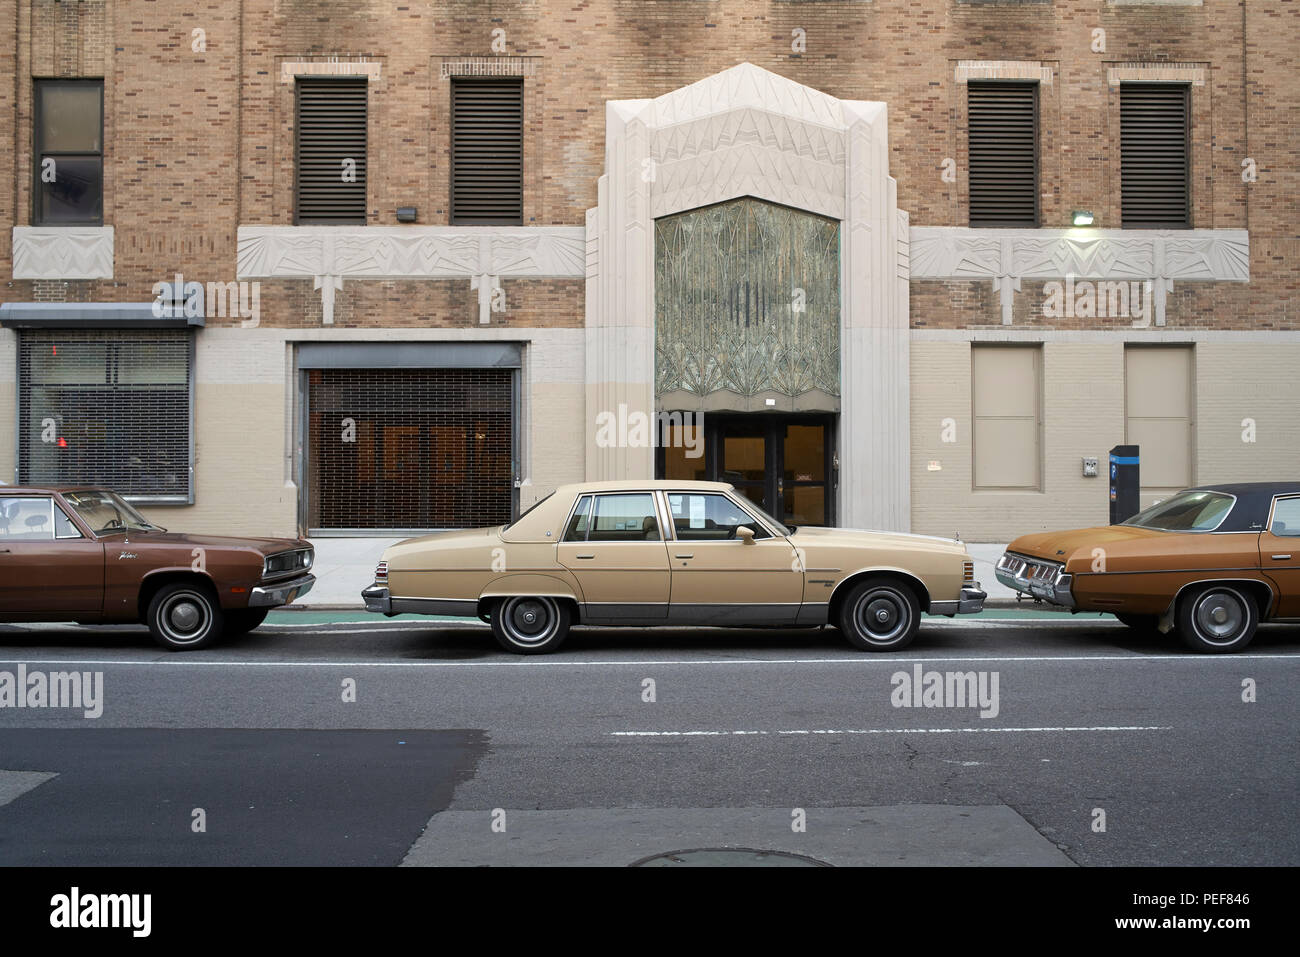 Old-timer cars parked on New York City street - Stock Image